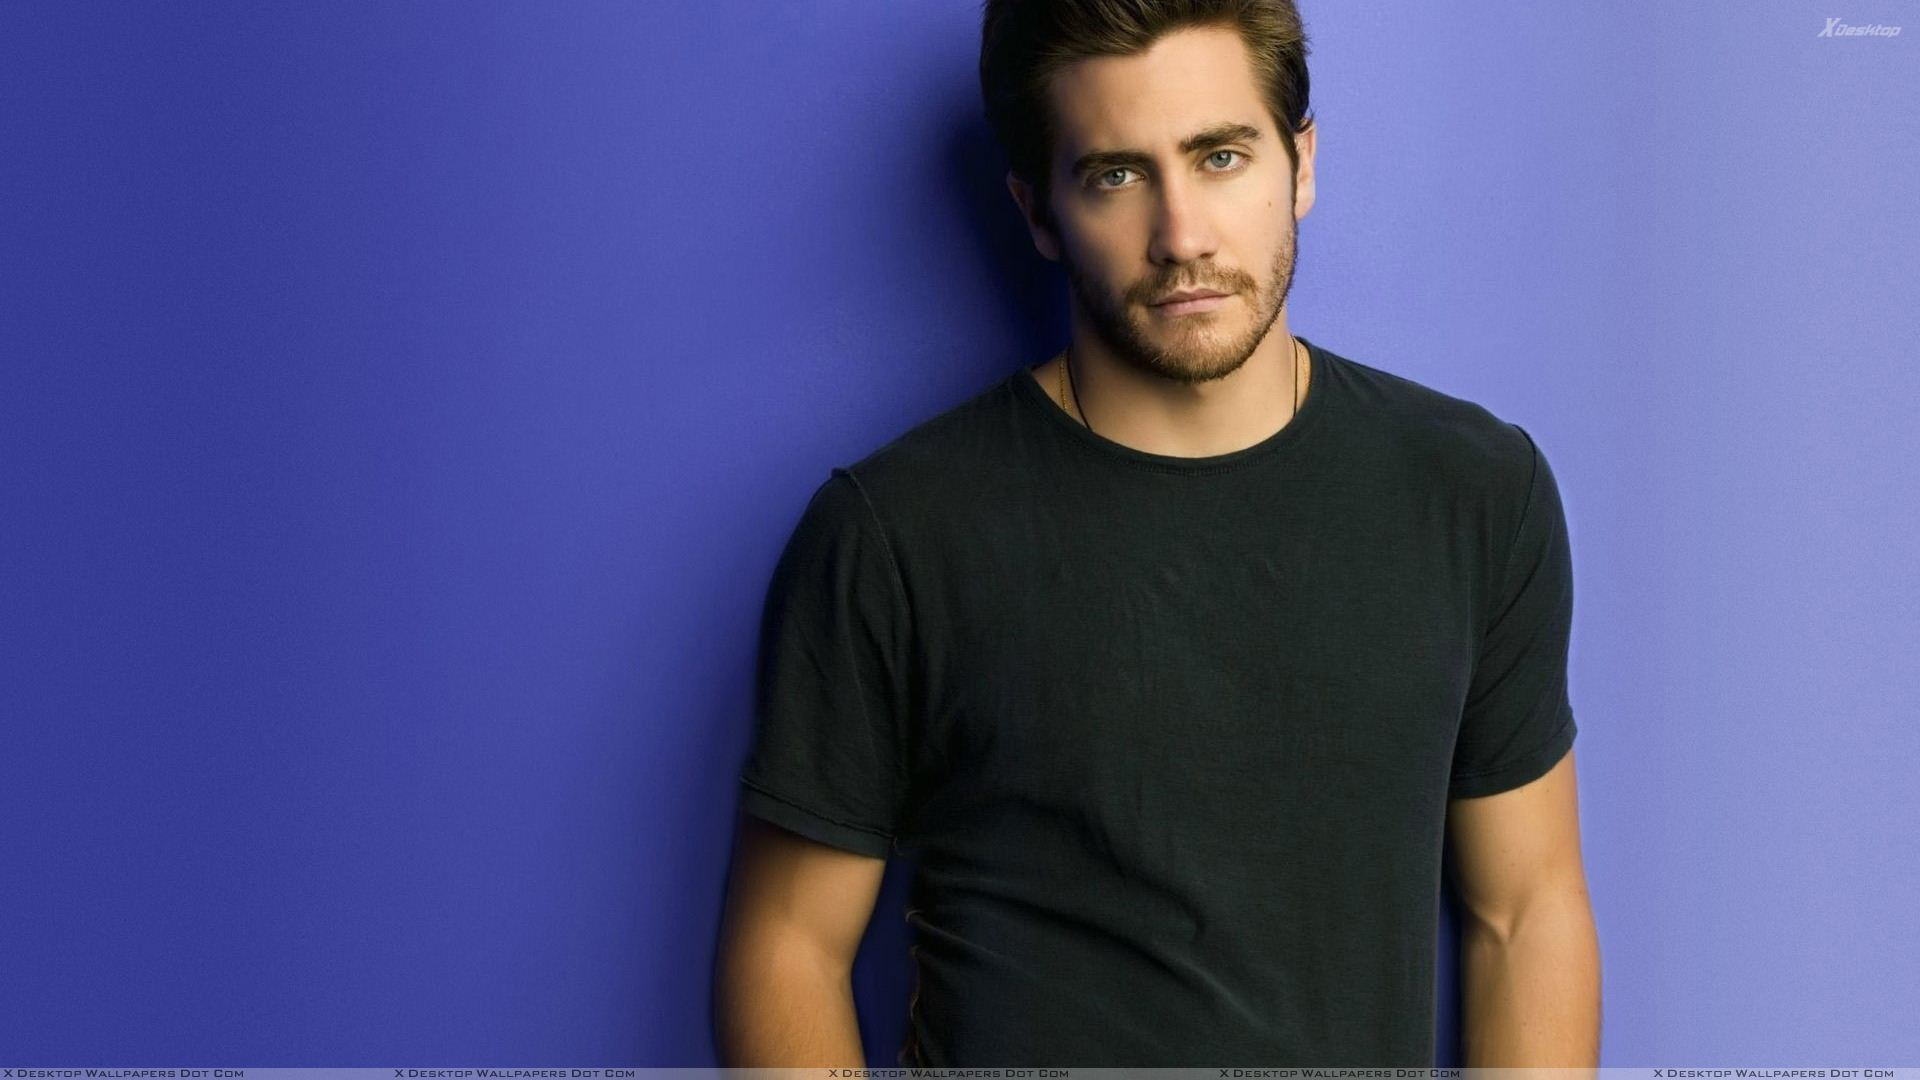 Jake Gyllenhaal Wallpapers Photos Images in HD 1920x1080